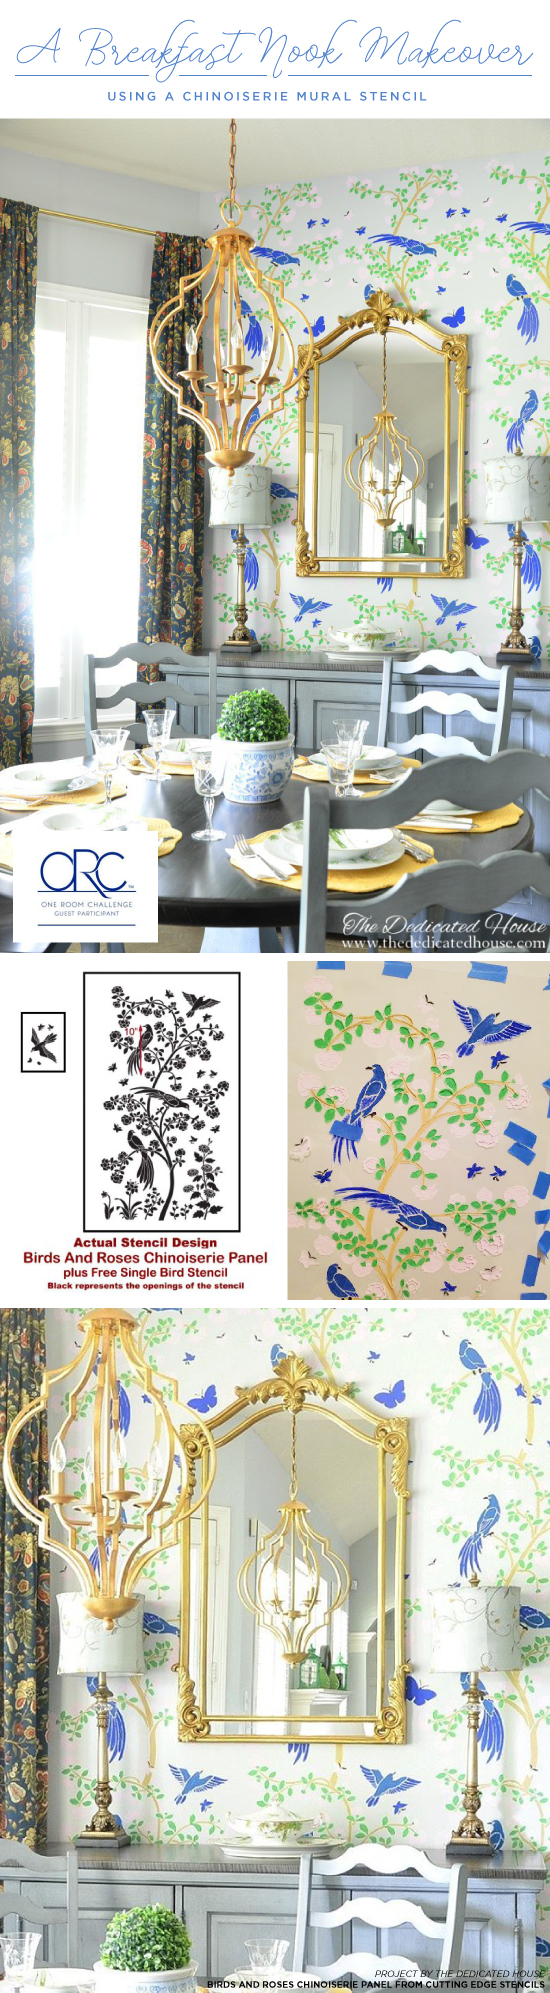 Cutting Edge Stencils shares a DIY stenciled breakfast nook by The Dedicated House that used the Chinoiserie Birds and Roses Mural Stencil. http://www.cuttingedgestencils.com/chinoiserie-wall-stencil-mural-panel-asian-design.html